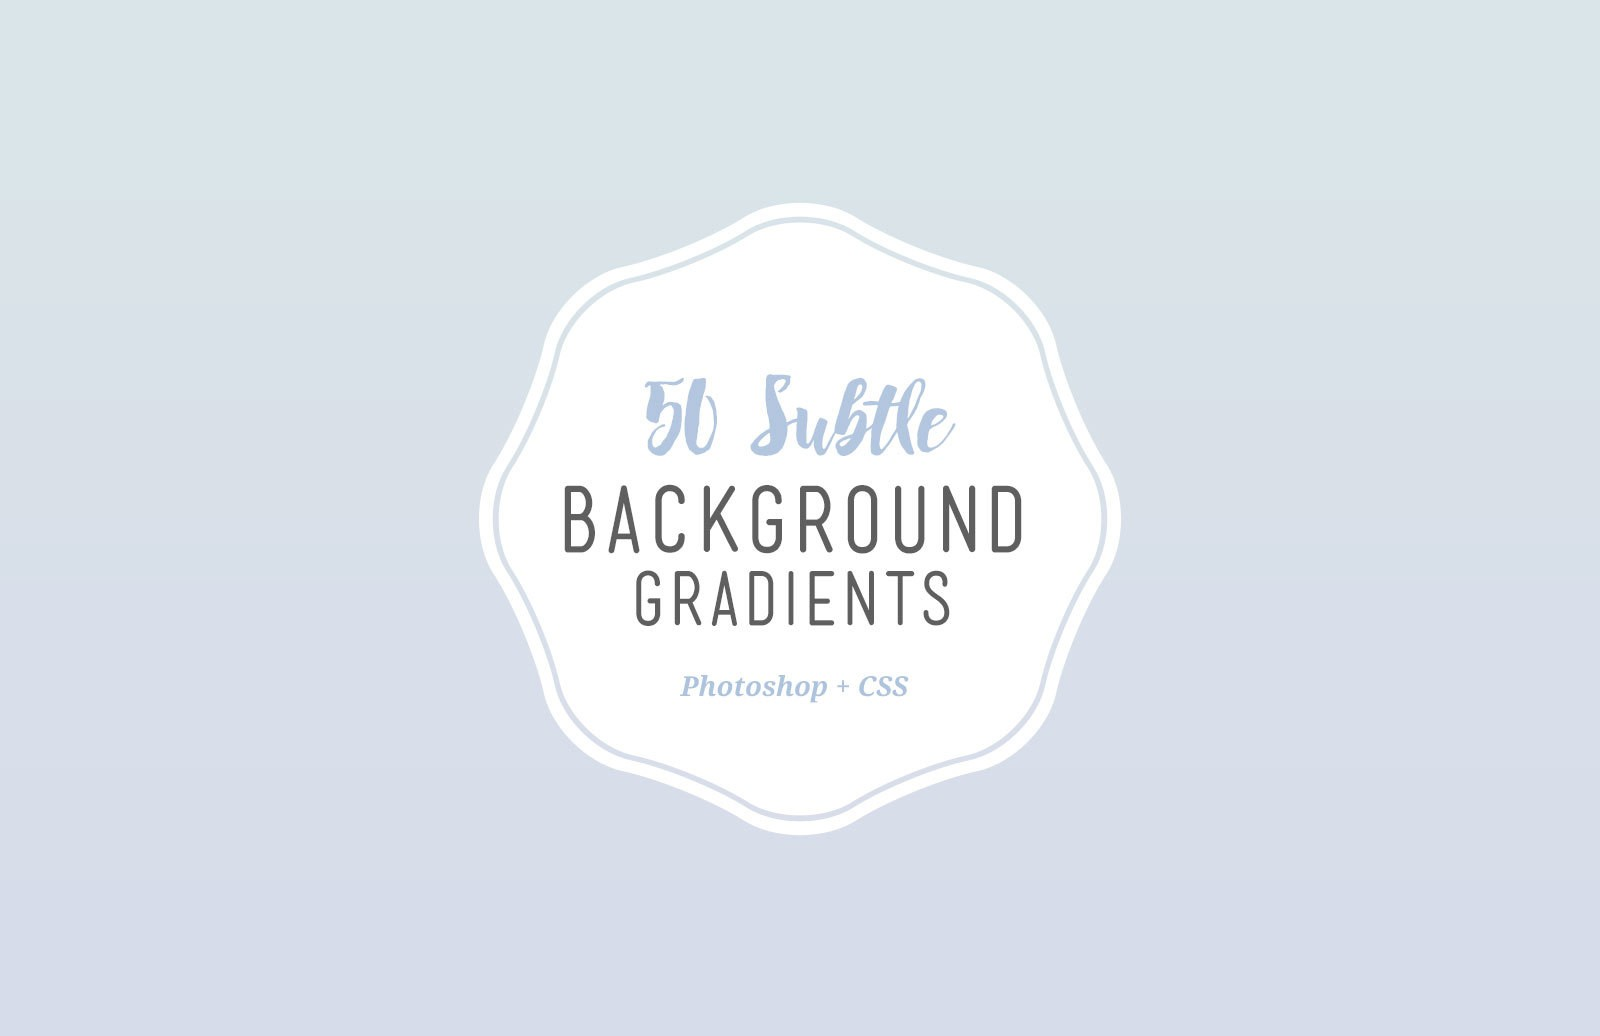 50 Subtle Background Gradients (CSS) 1